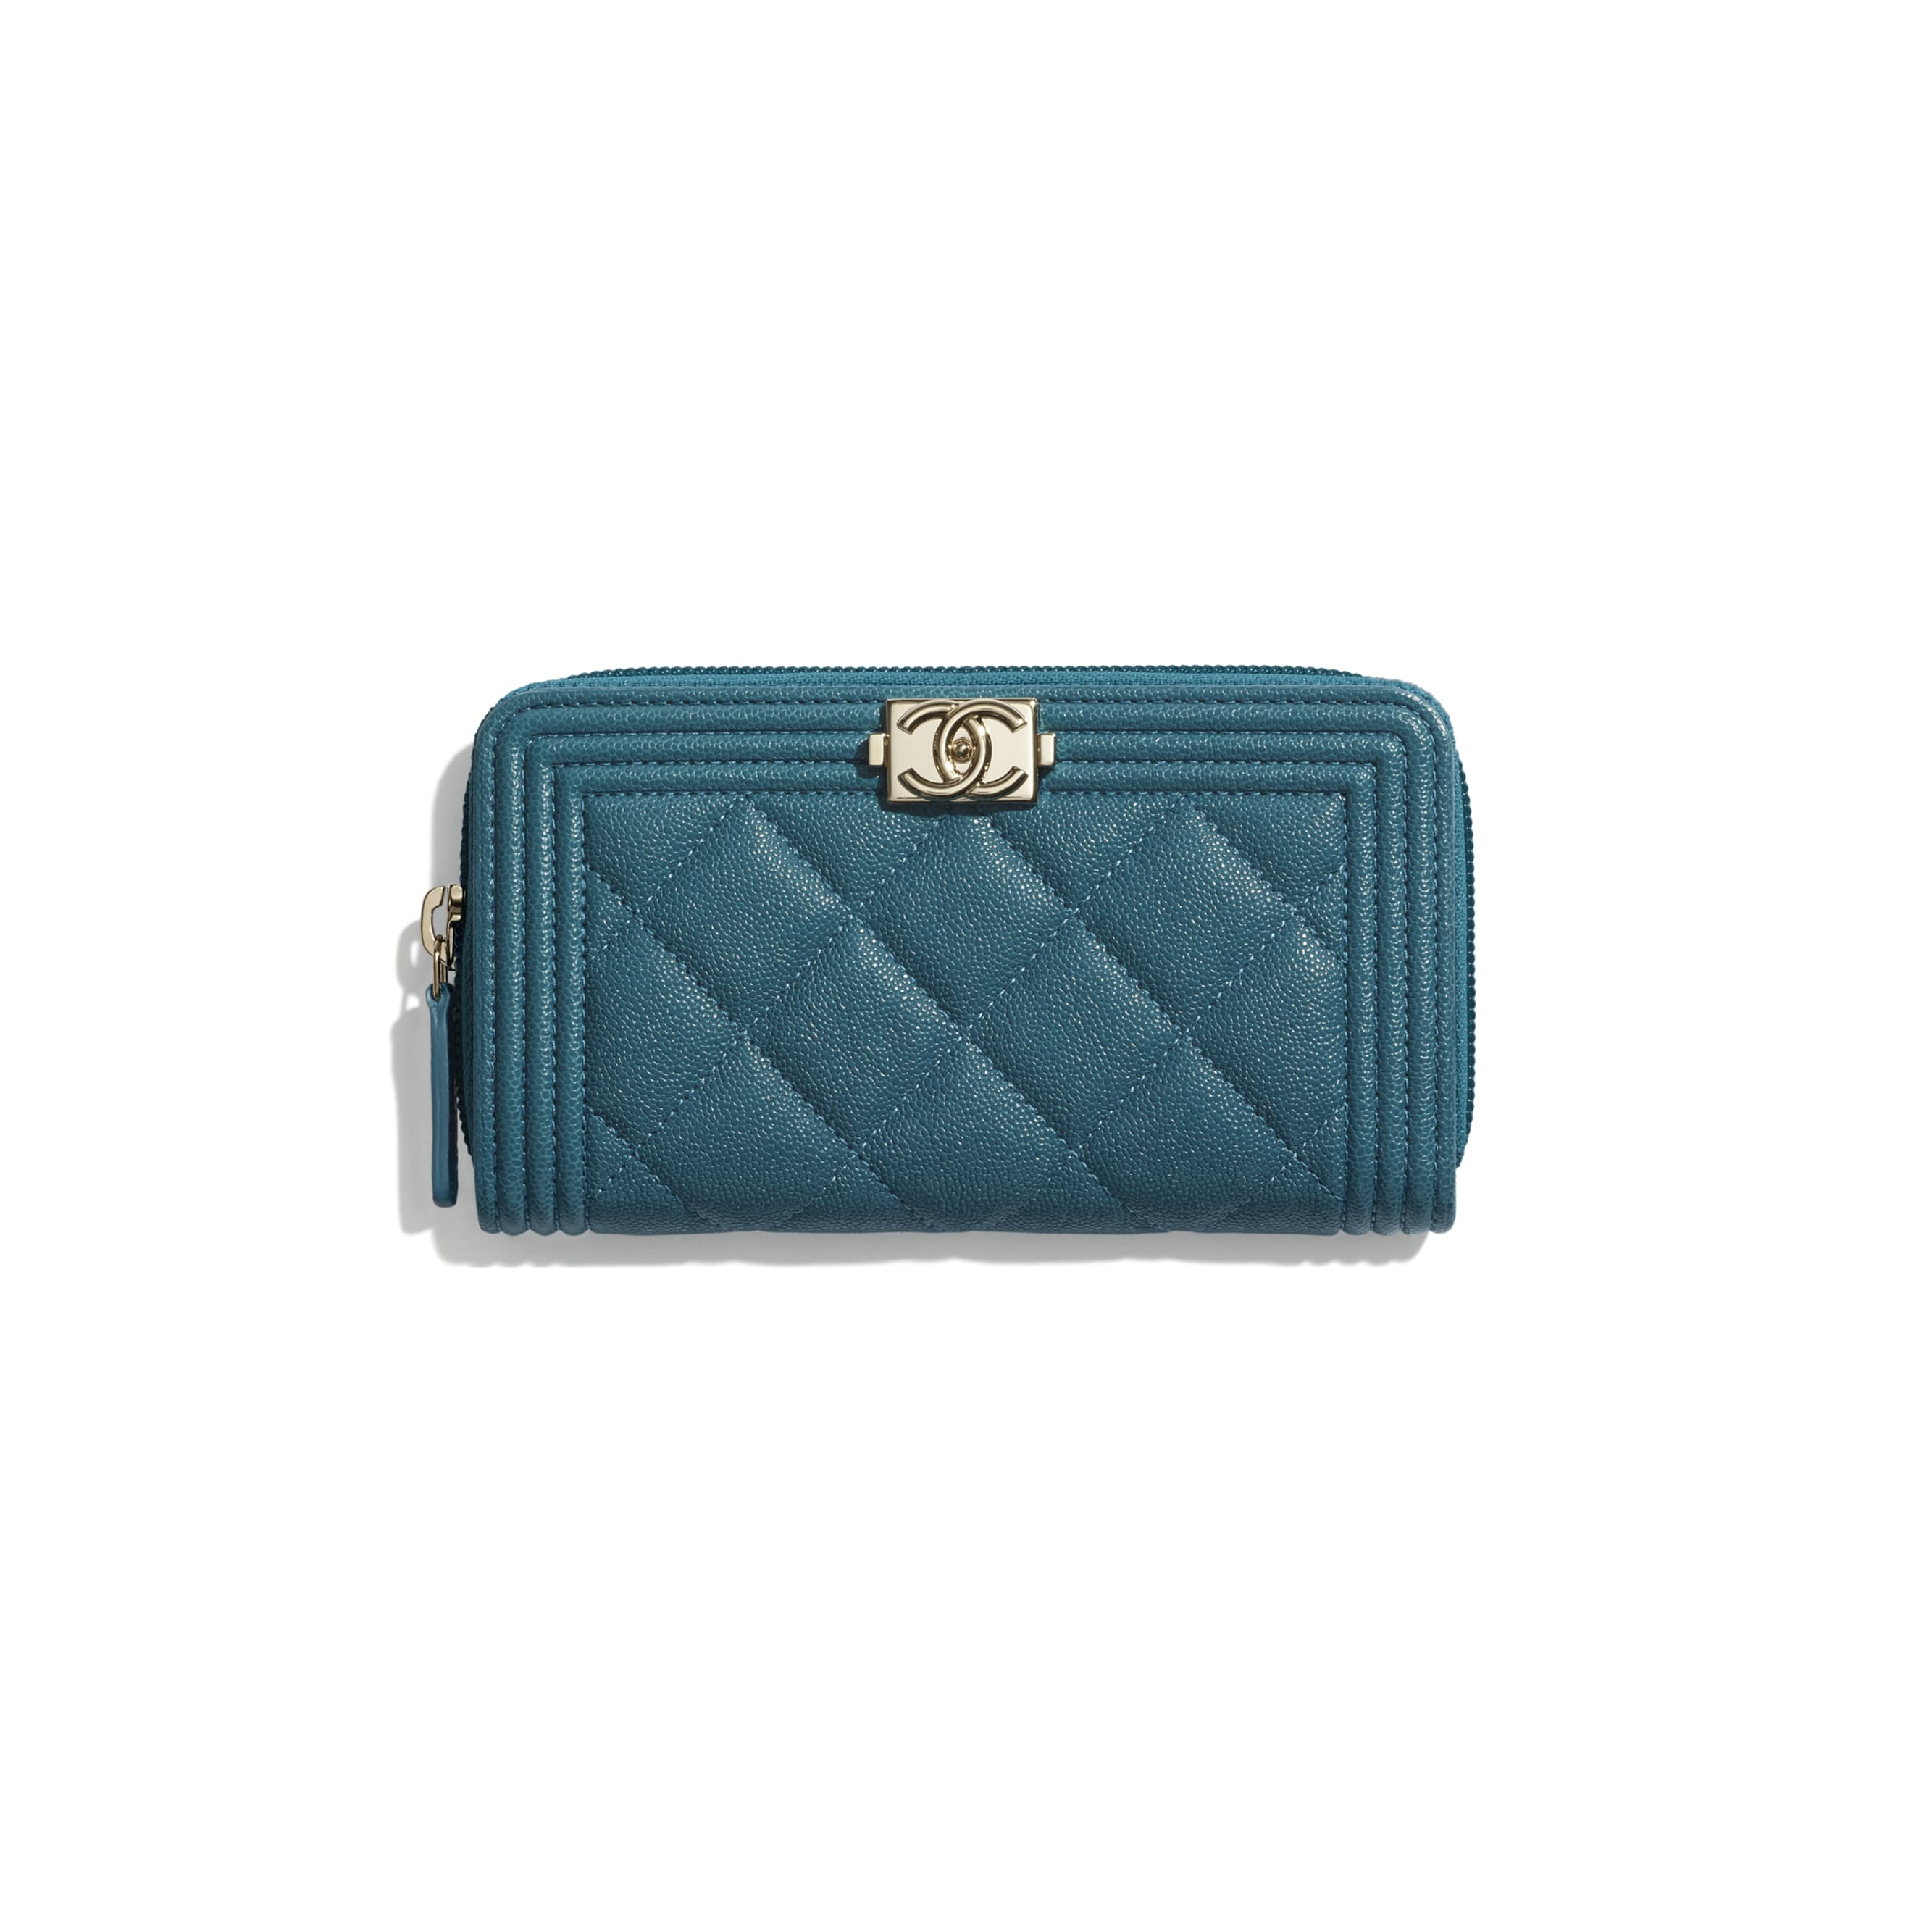 BOY CHANEL Zipped Wallet - Turquoise - Grained Calfskin & Gold-Tone Metal - CHANEL - Default view - see standard sized version